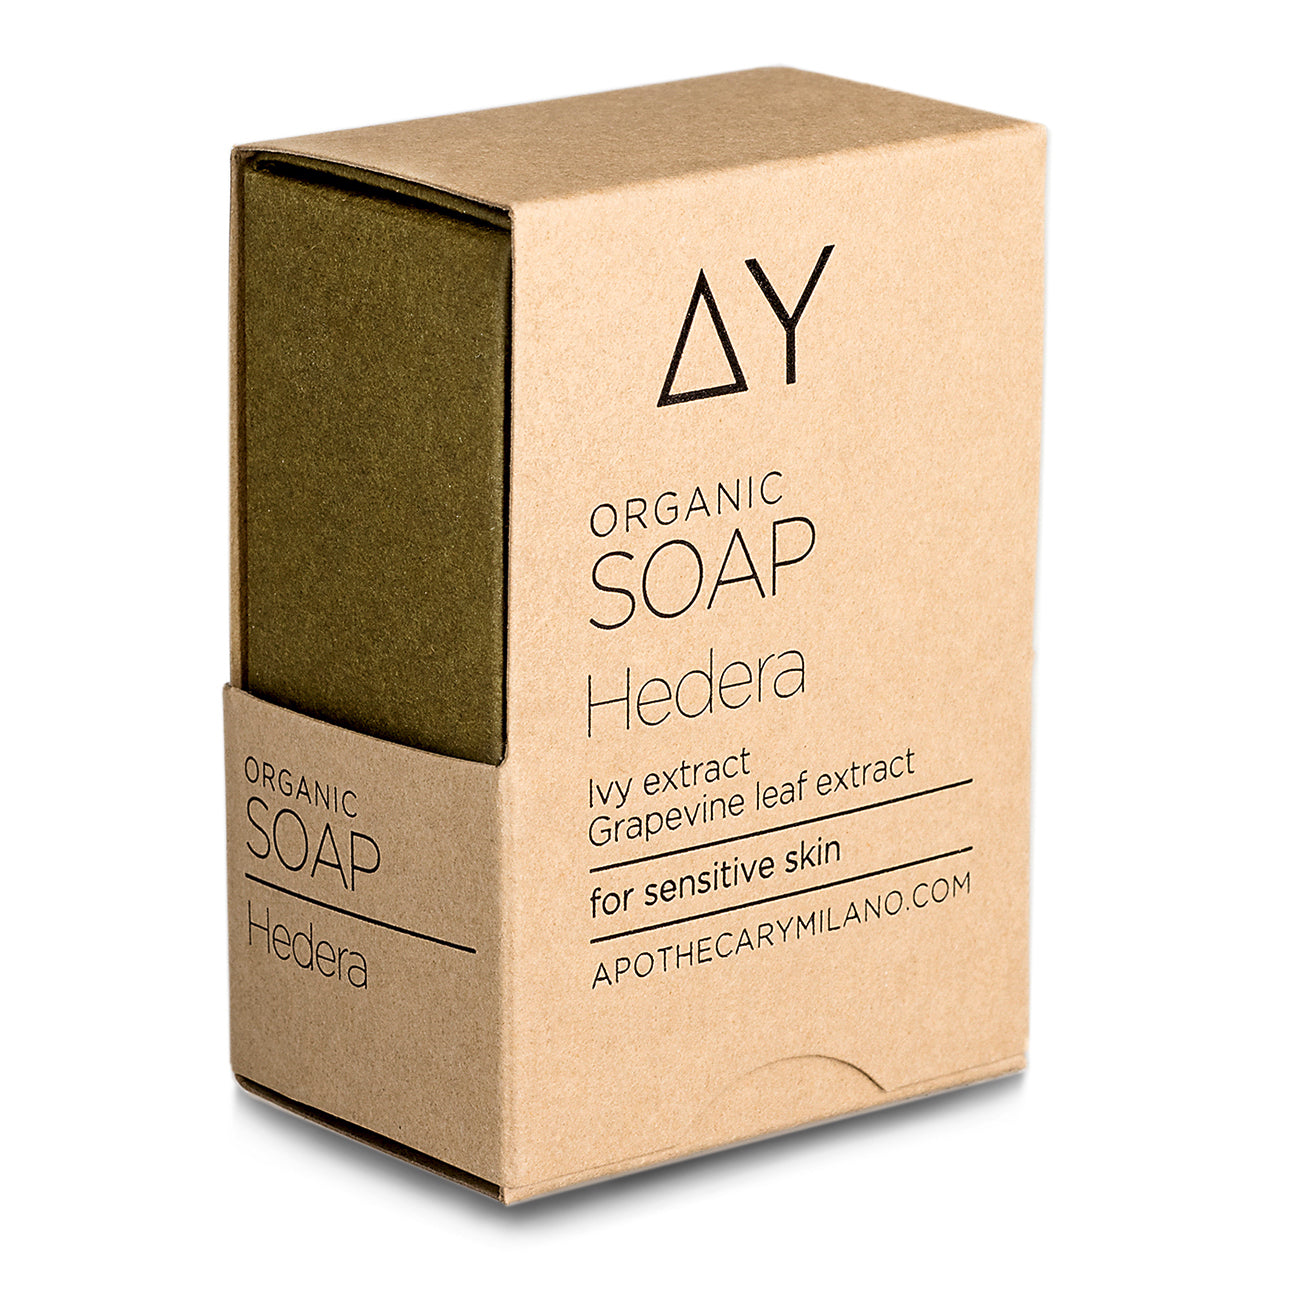 Red Grapevine and Ivy Organic Soap